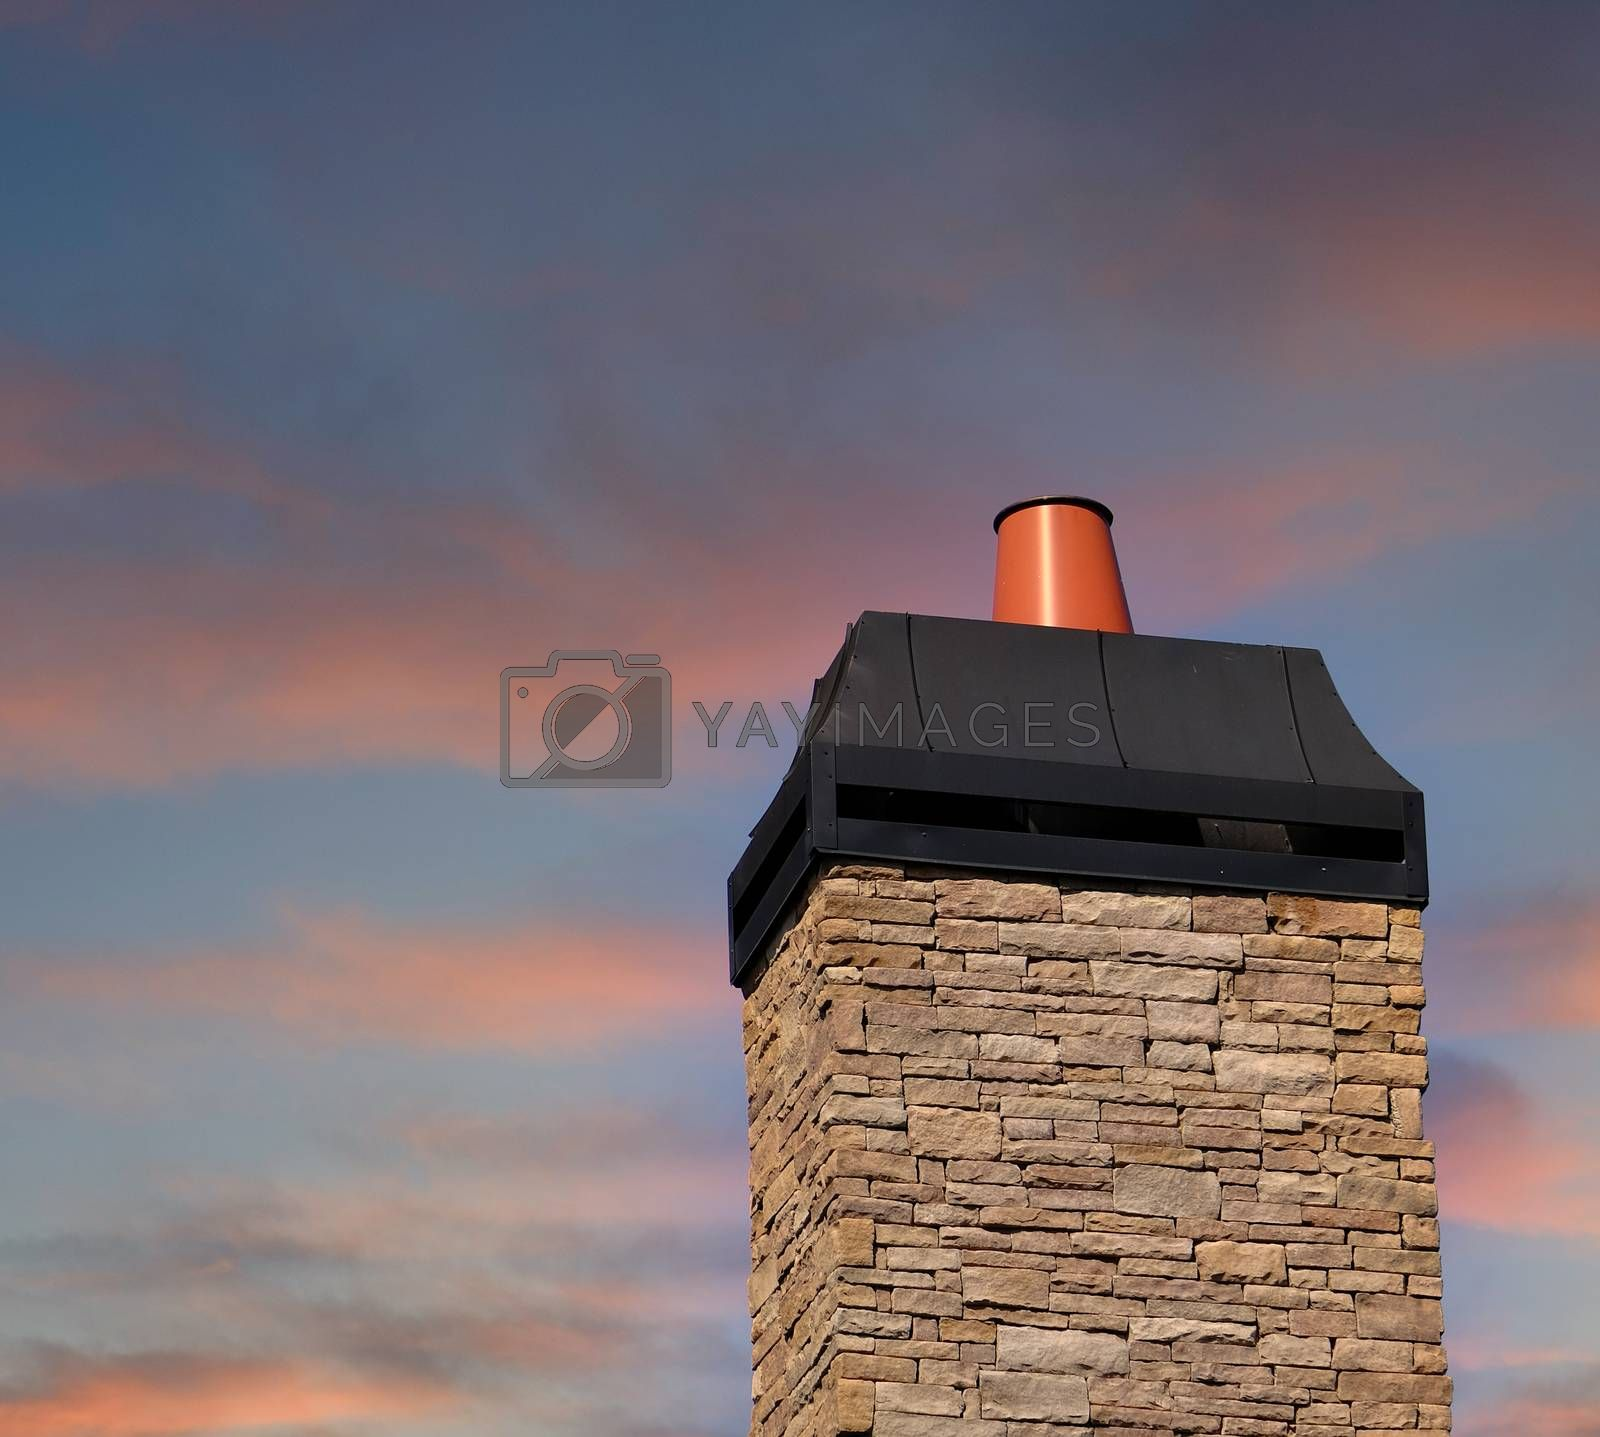 Stone Chimeny with Metal Cap Afainst a Clear Blue Sky